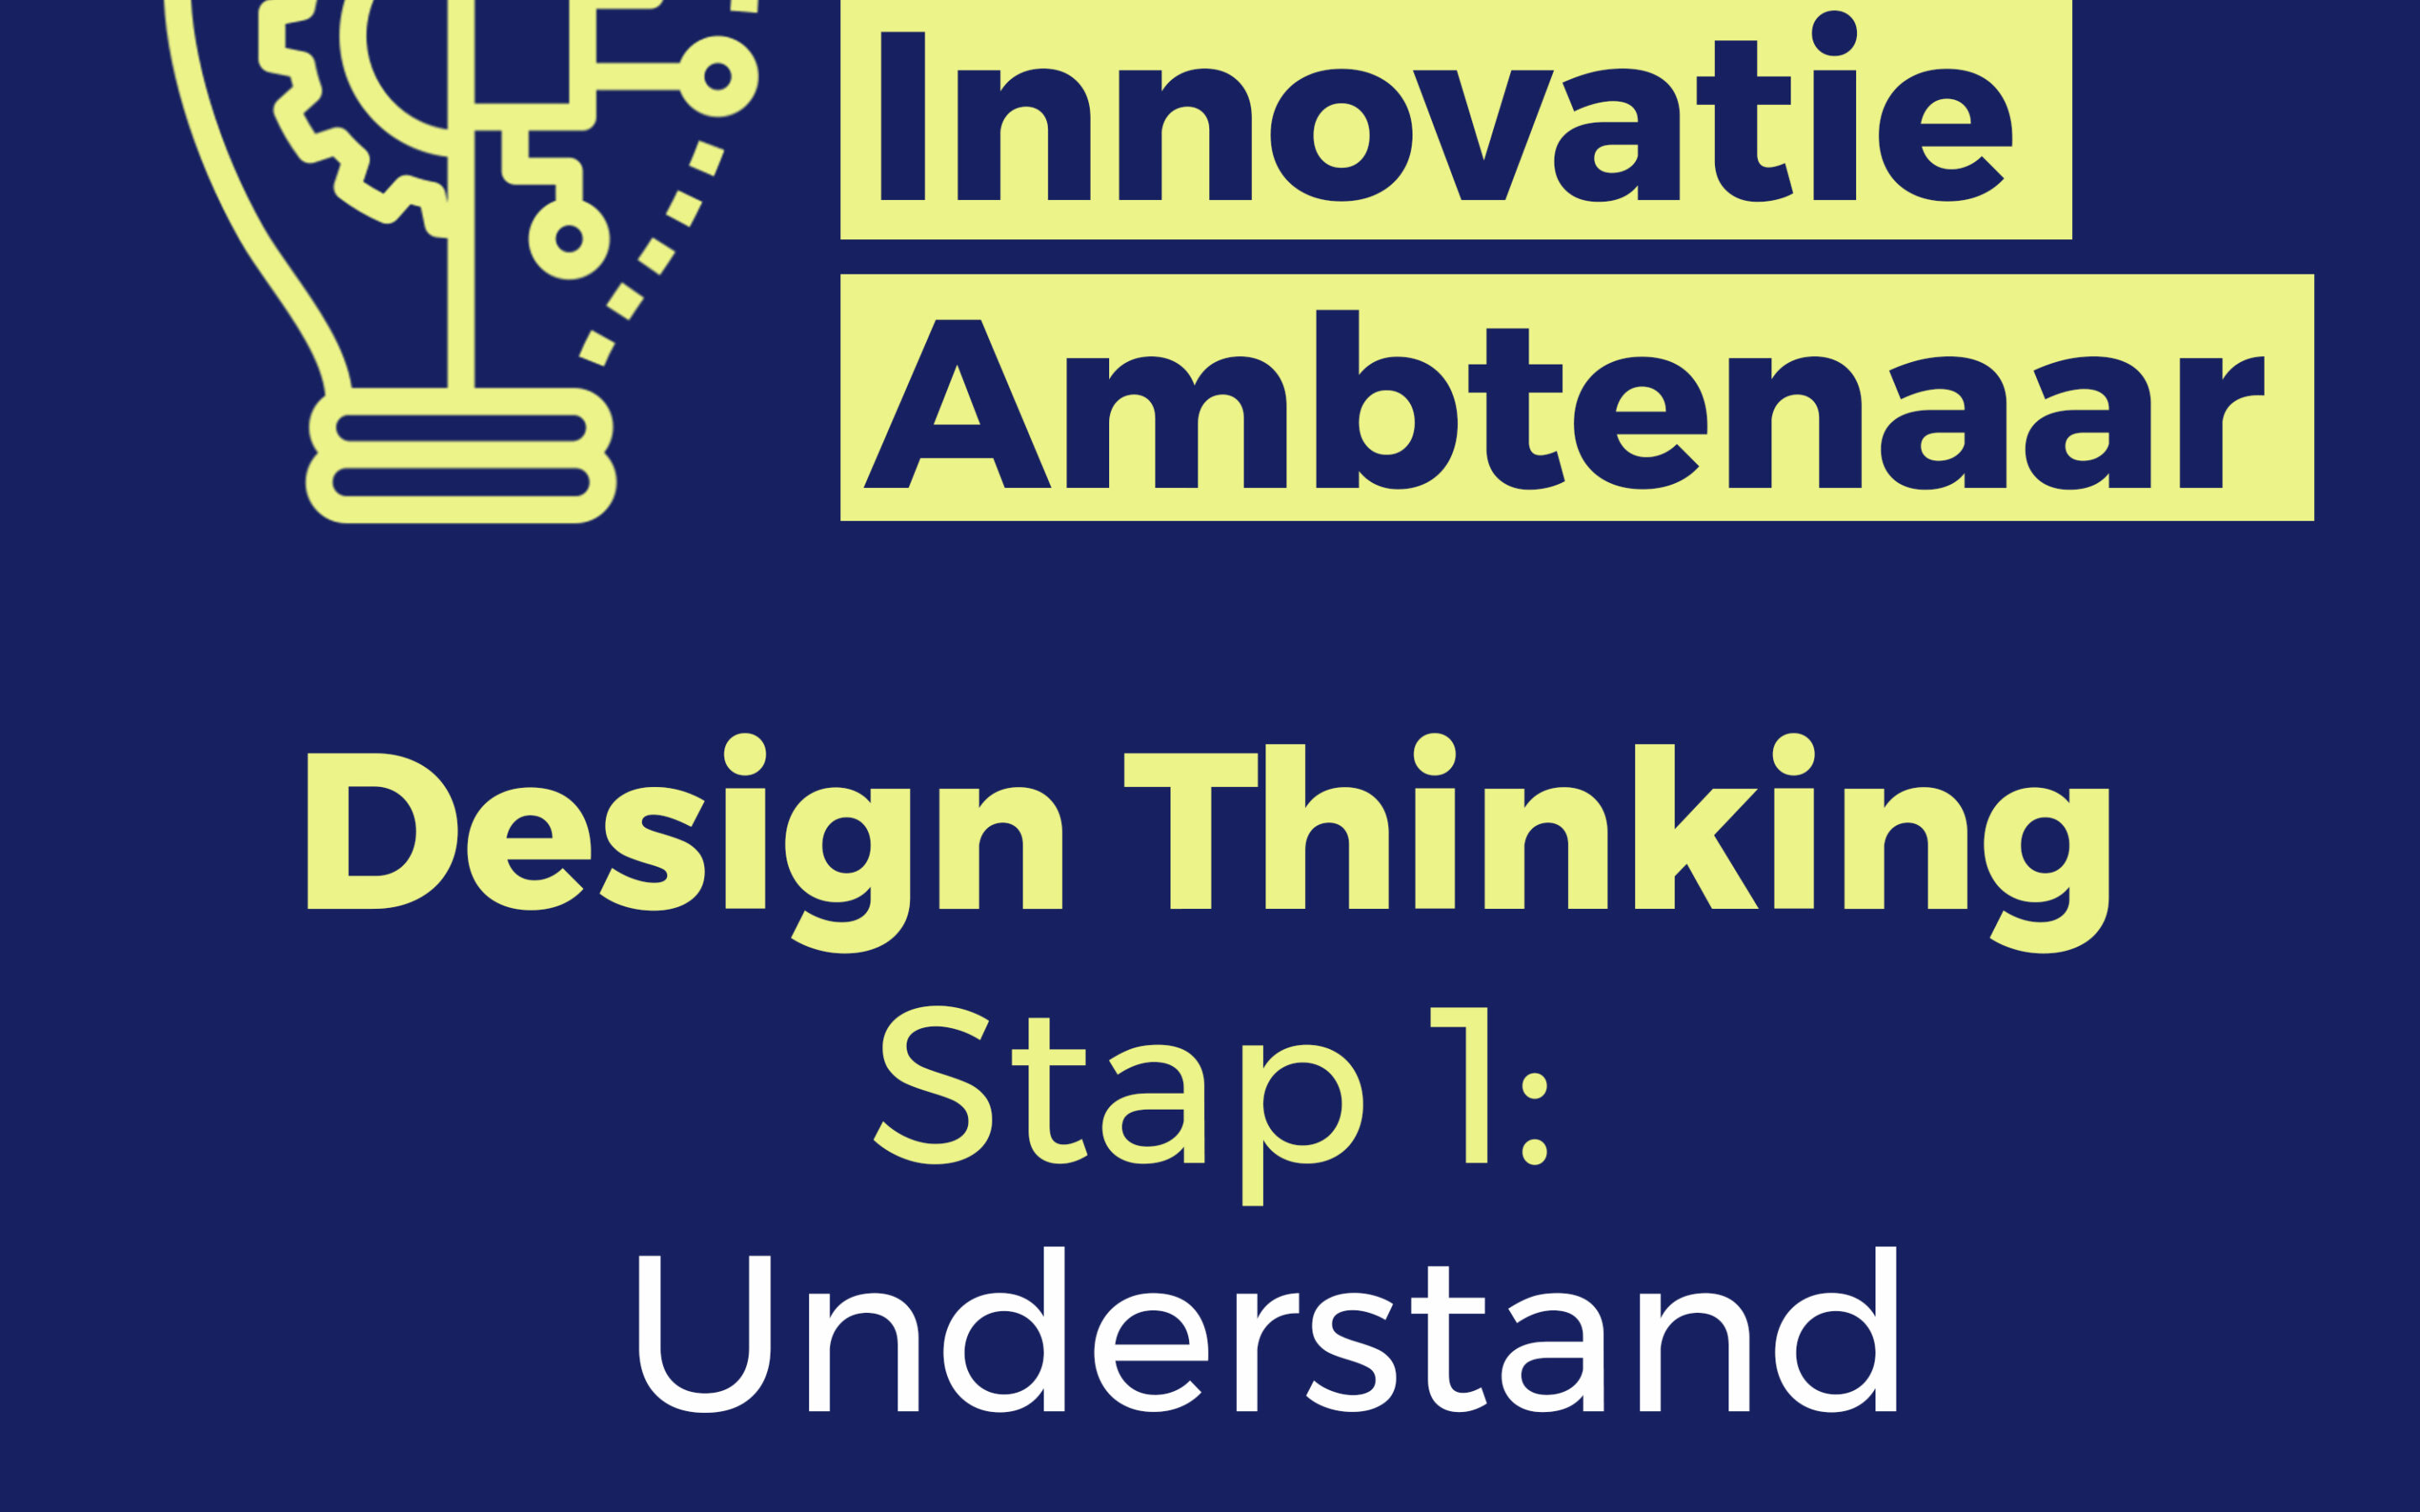 Design Thinking – Stap 1: Understand